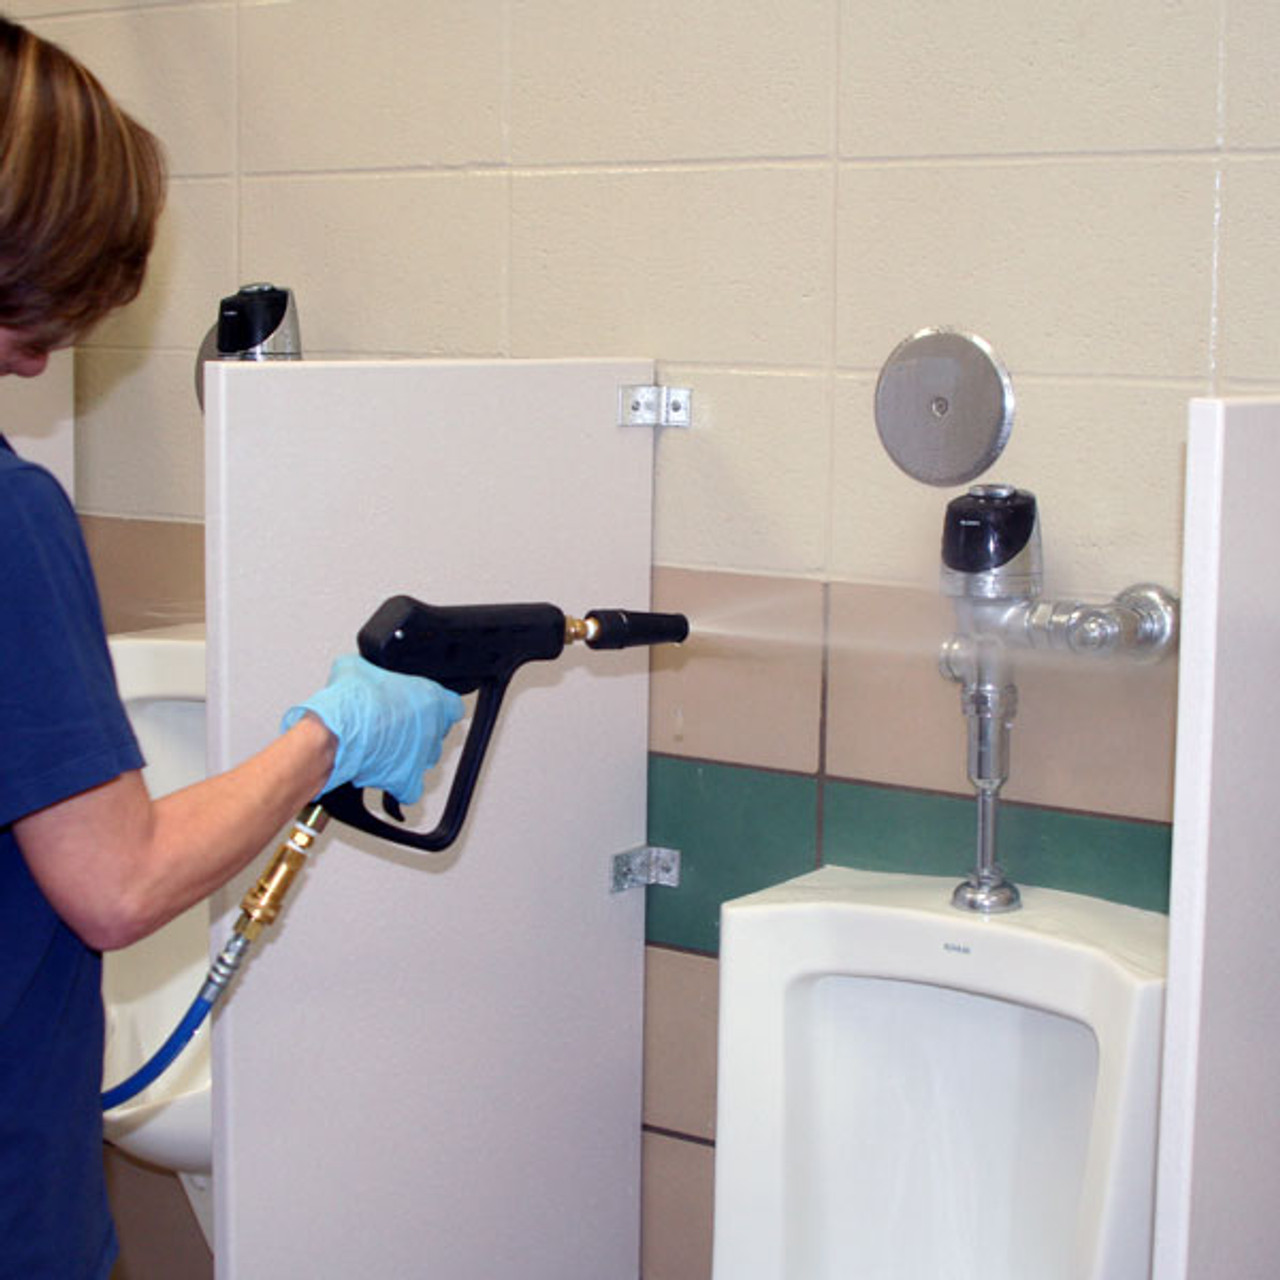 Now you can clean toilets, urinals, and restroom floors without getting your hands dirty.